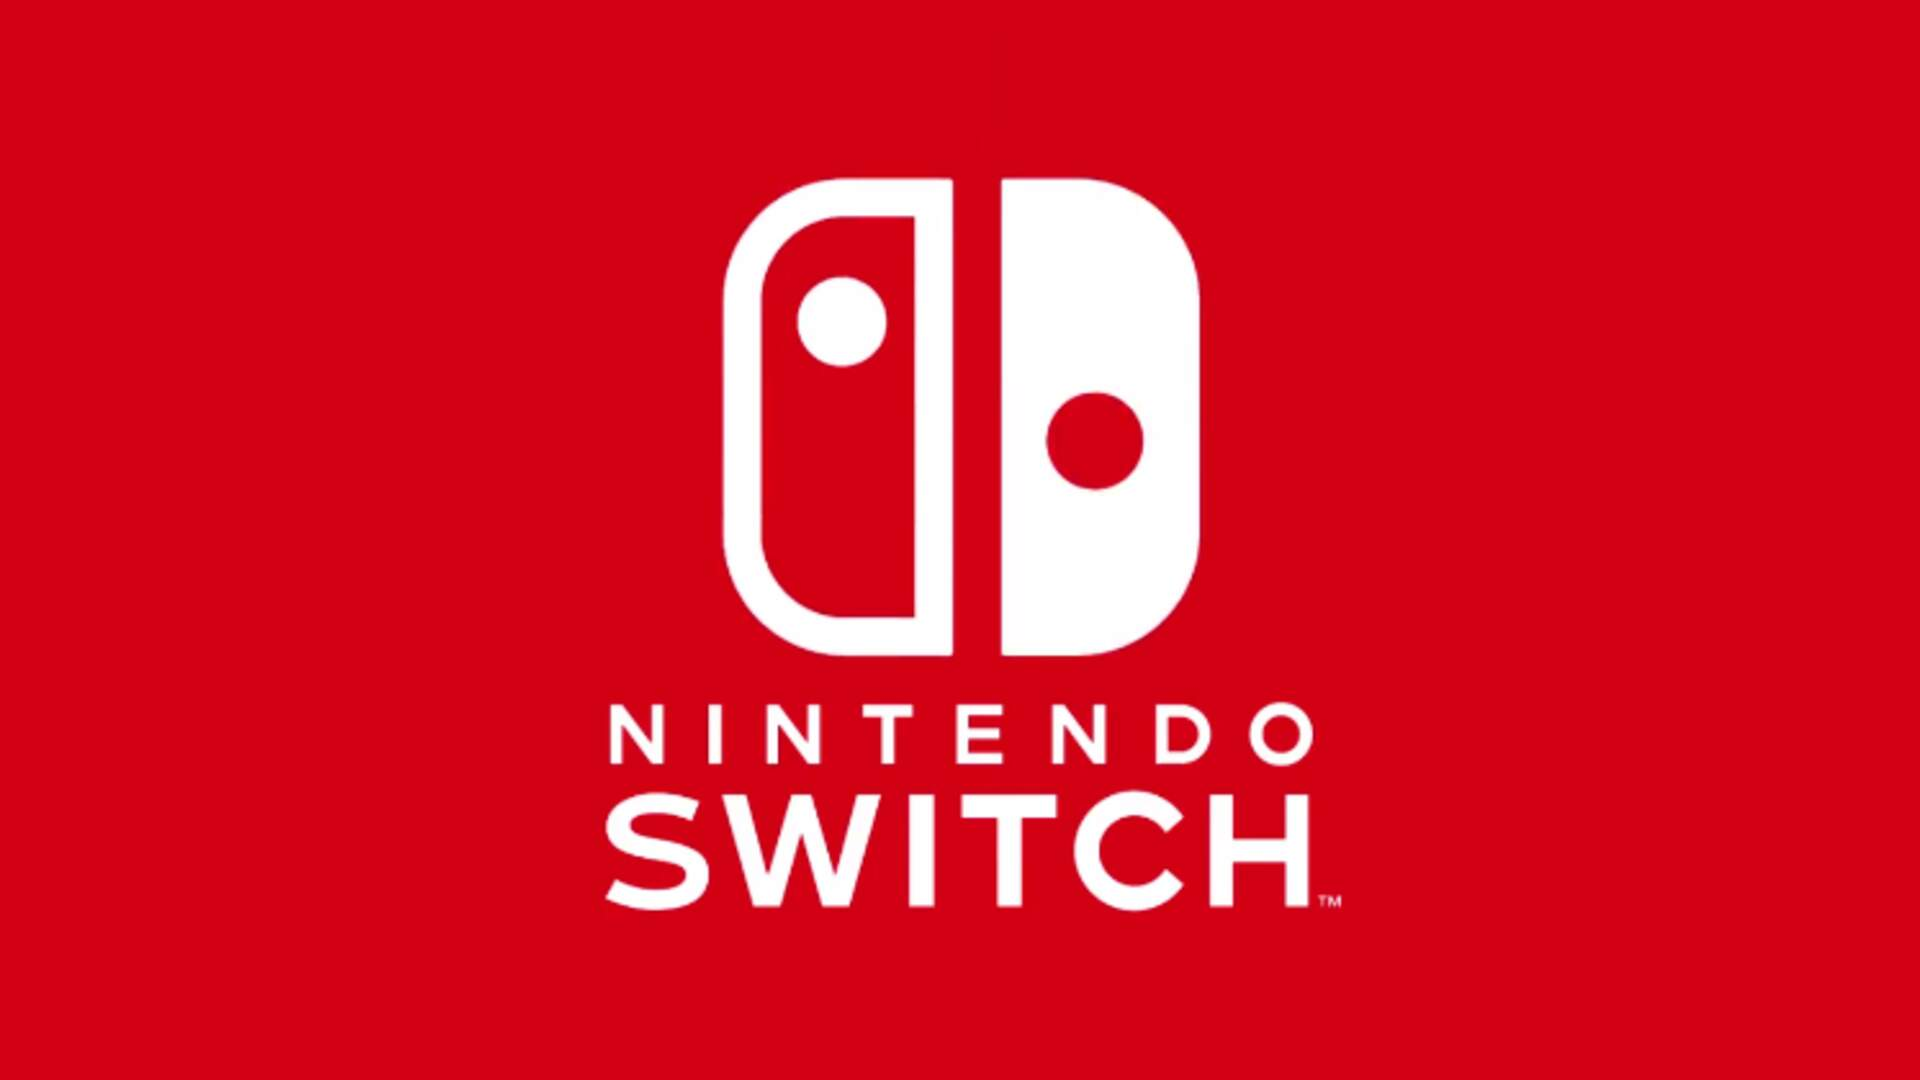 Nintendo Direct Delayed Due to the Powerful Earthquake in Hokkaido, Japan